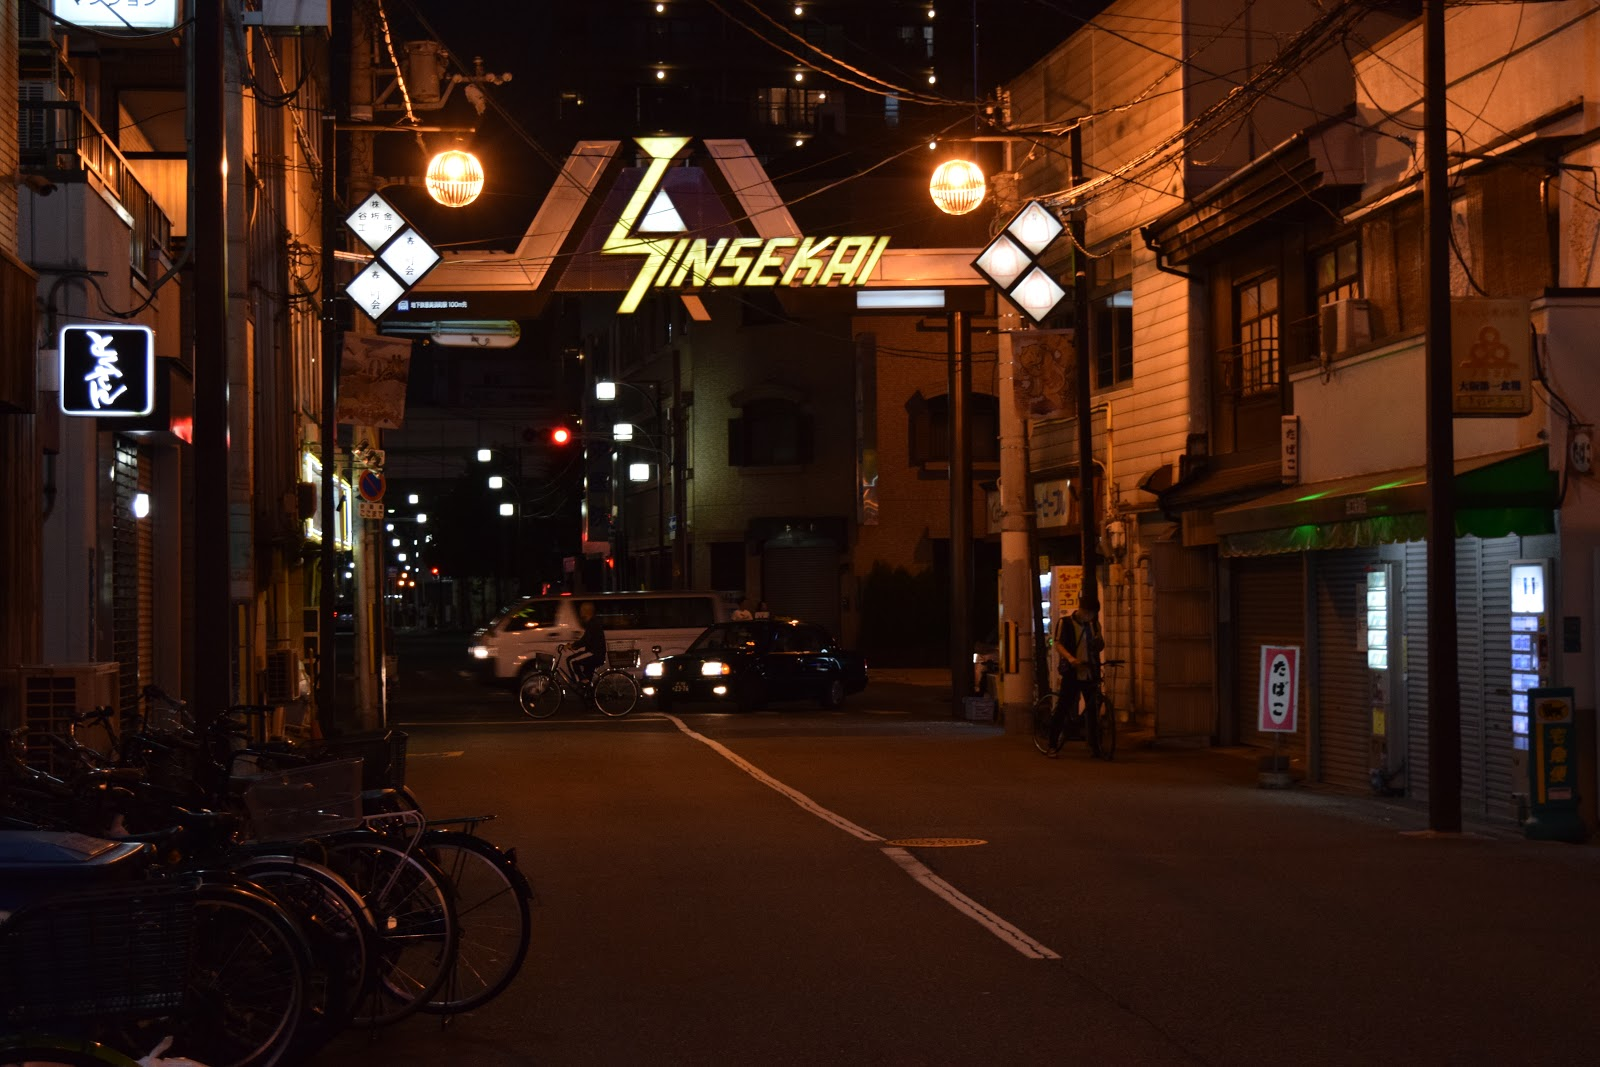 A street in Shinsekai, Osaka after dark